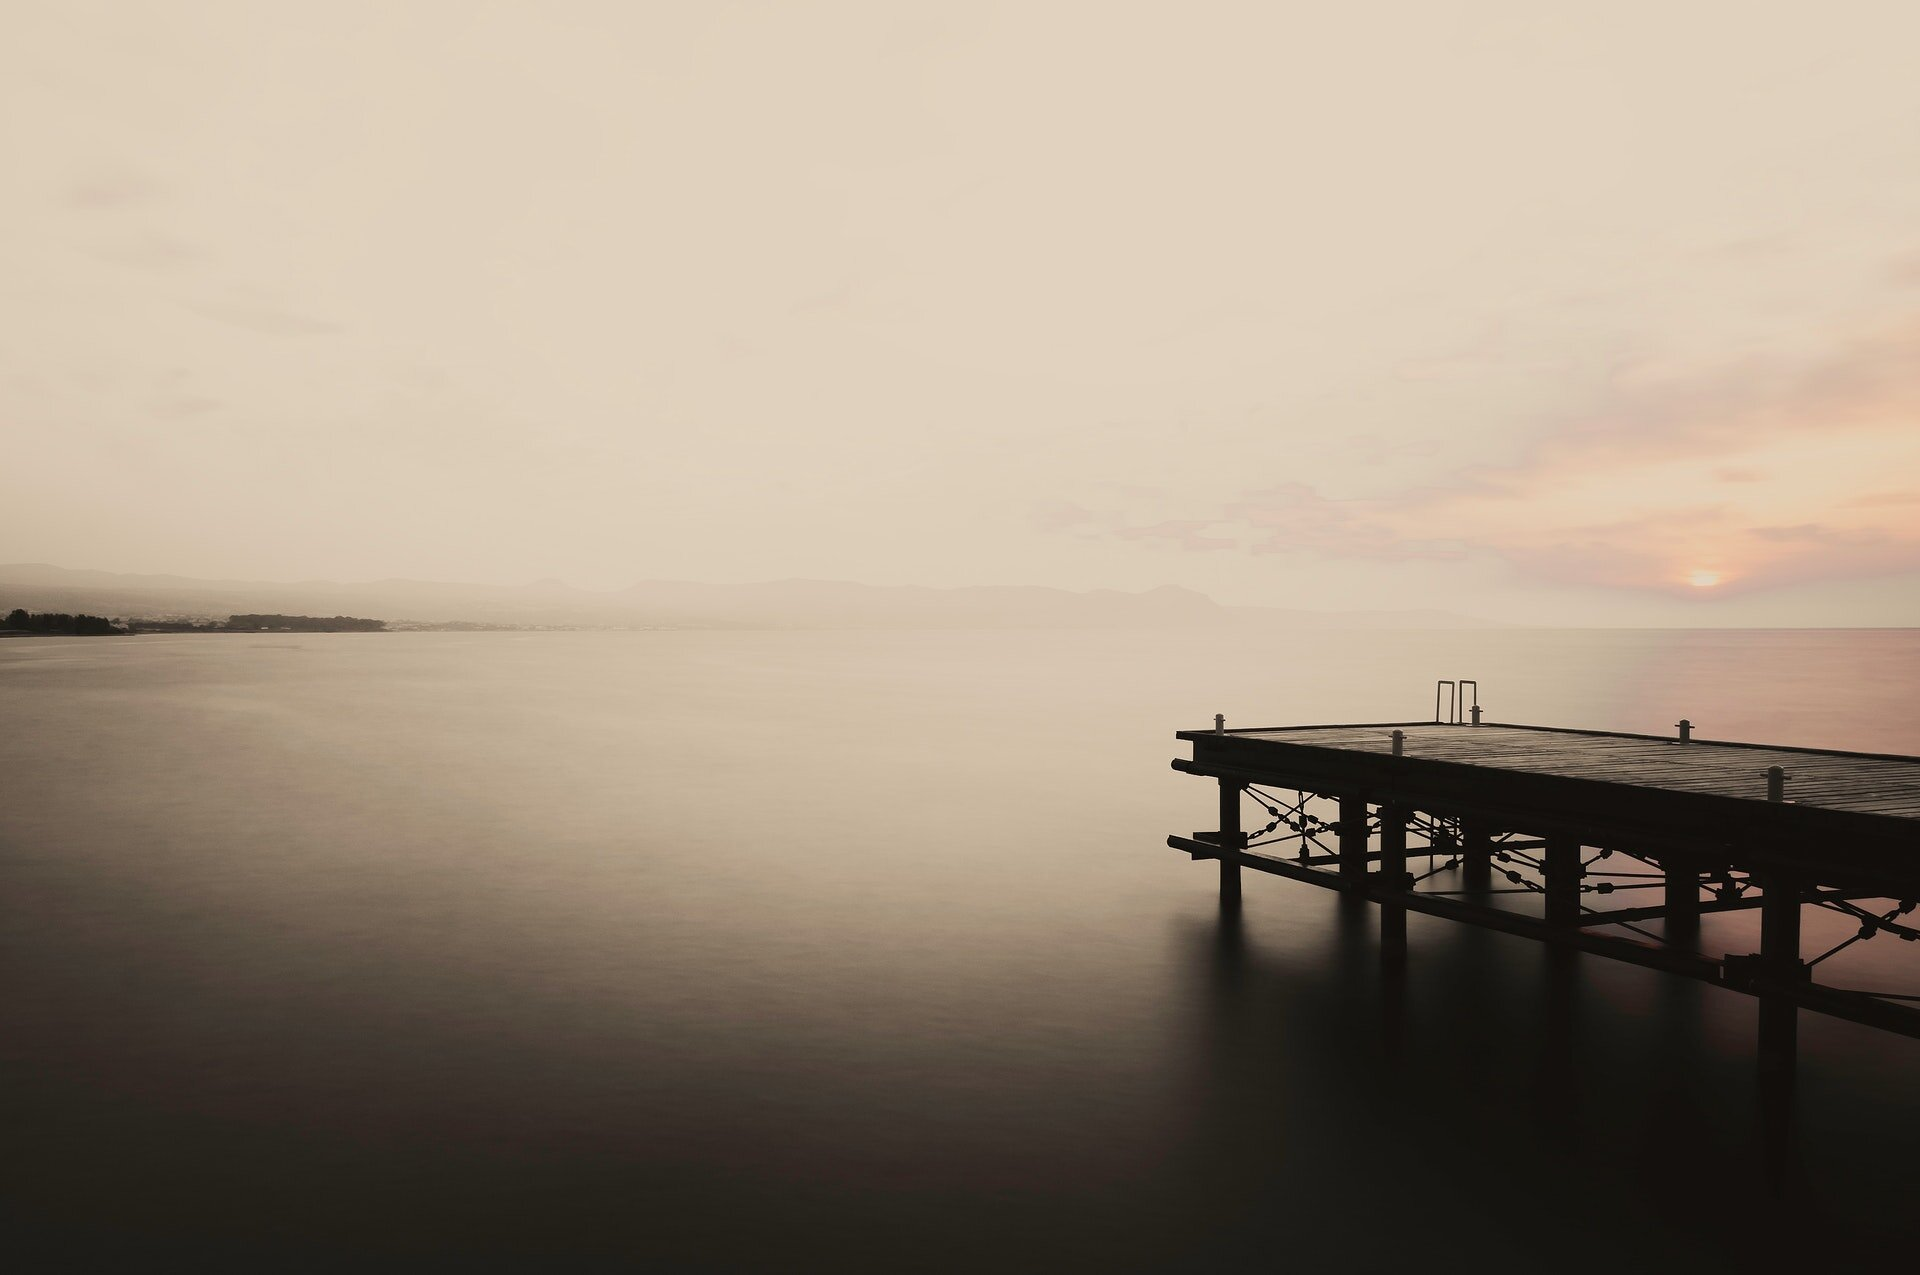 Long exposure by using an ND filter